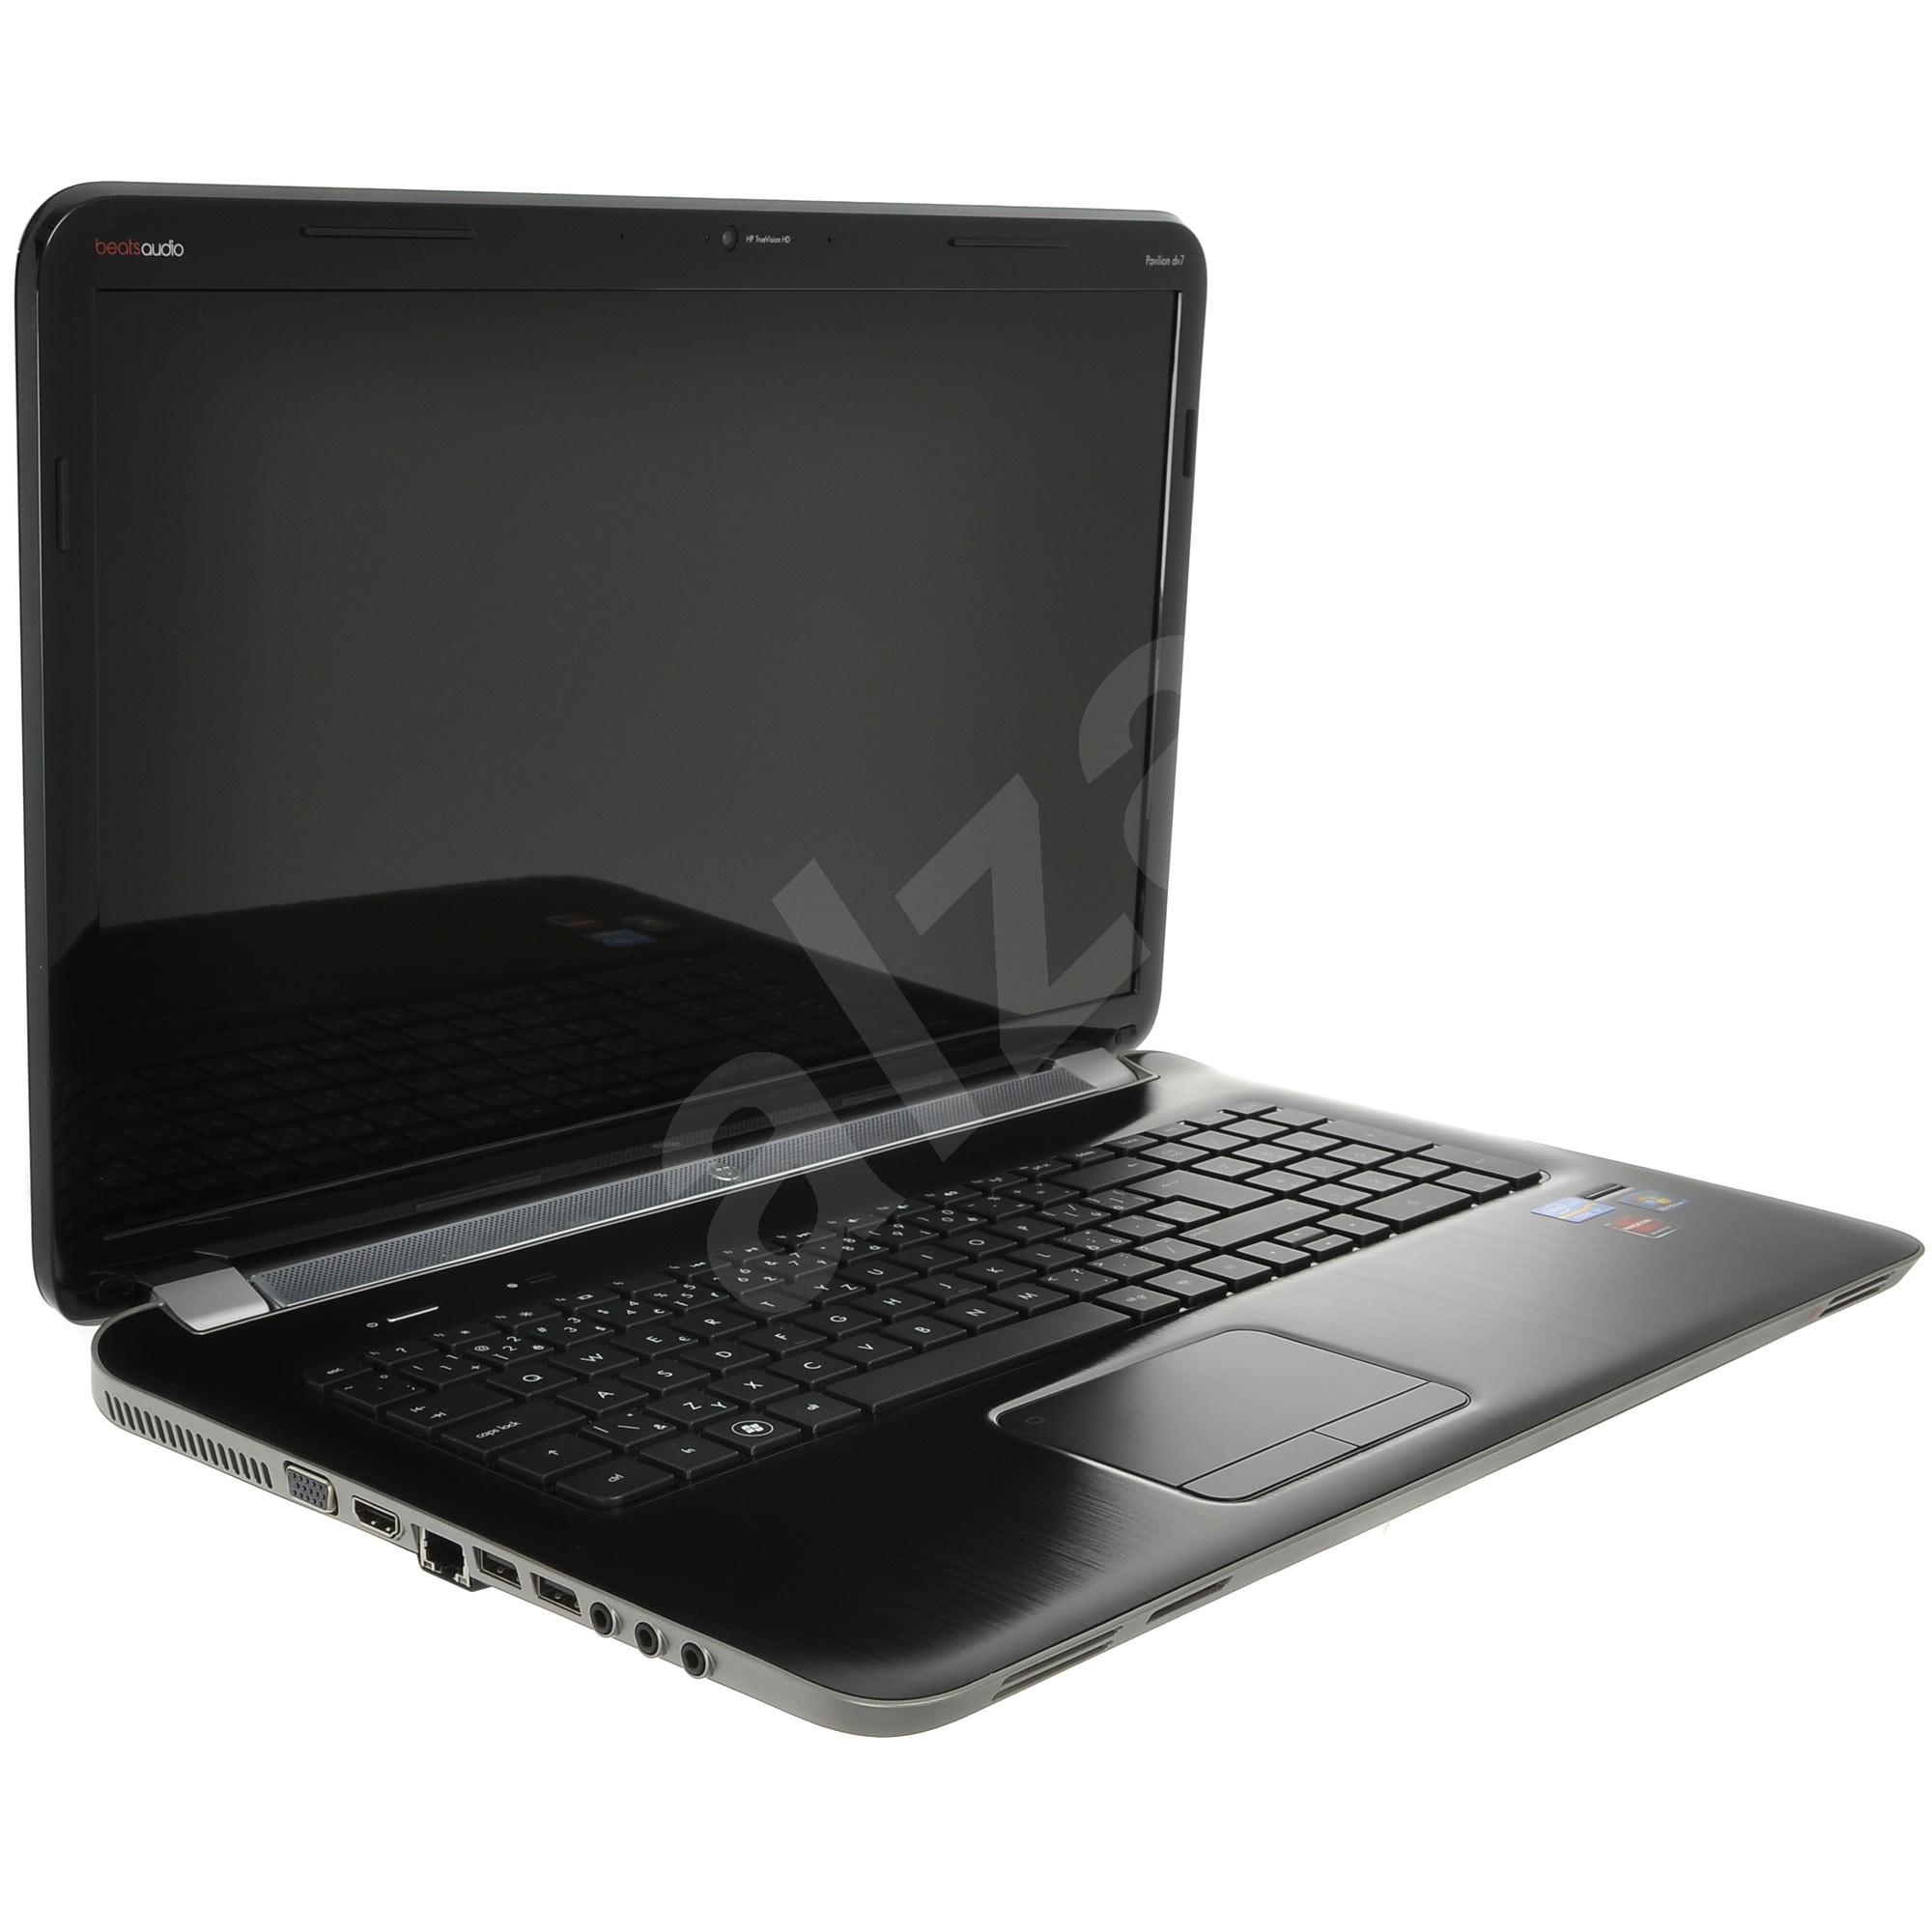 hp pavilion dv7 6050ec notebook. Black Bedroom Furniture Sets. Home Design Ideas